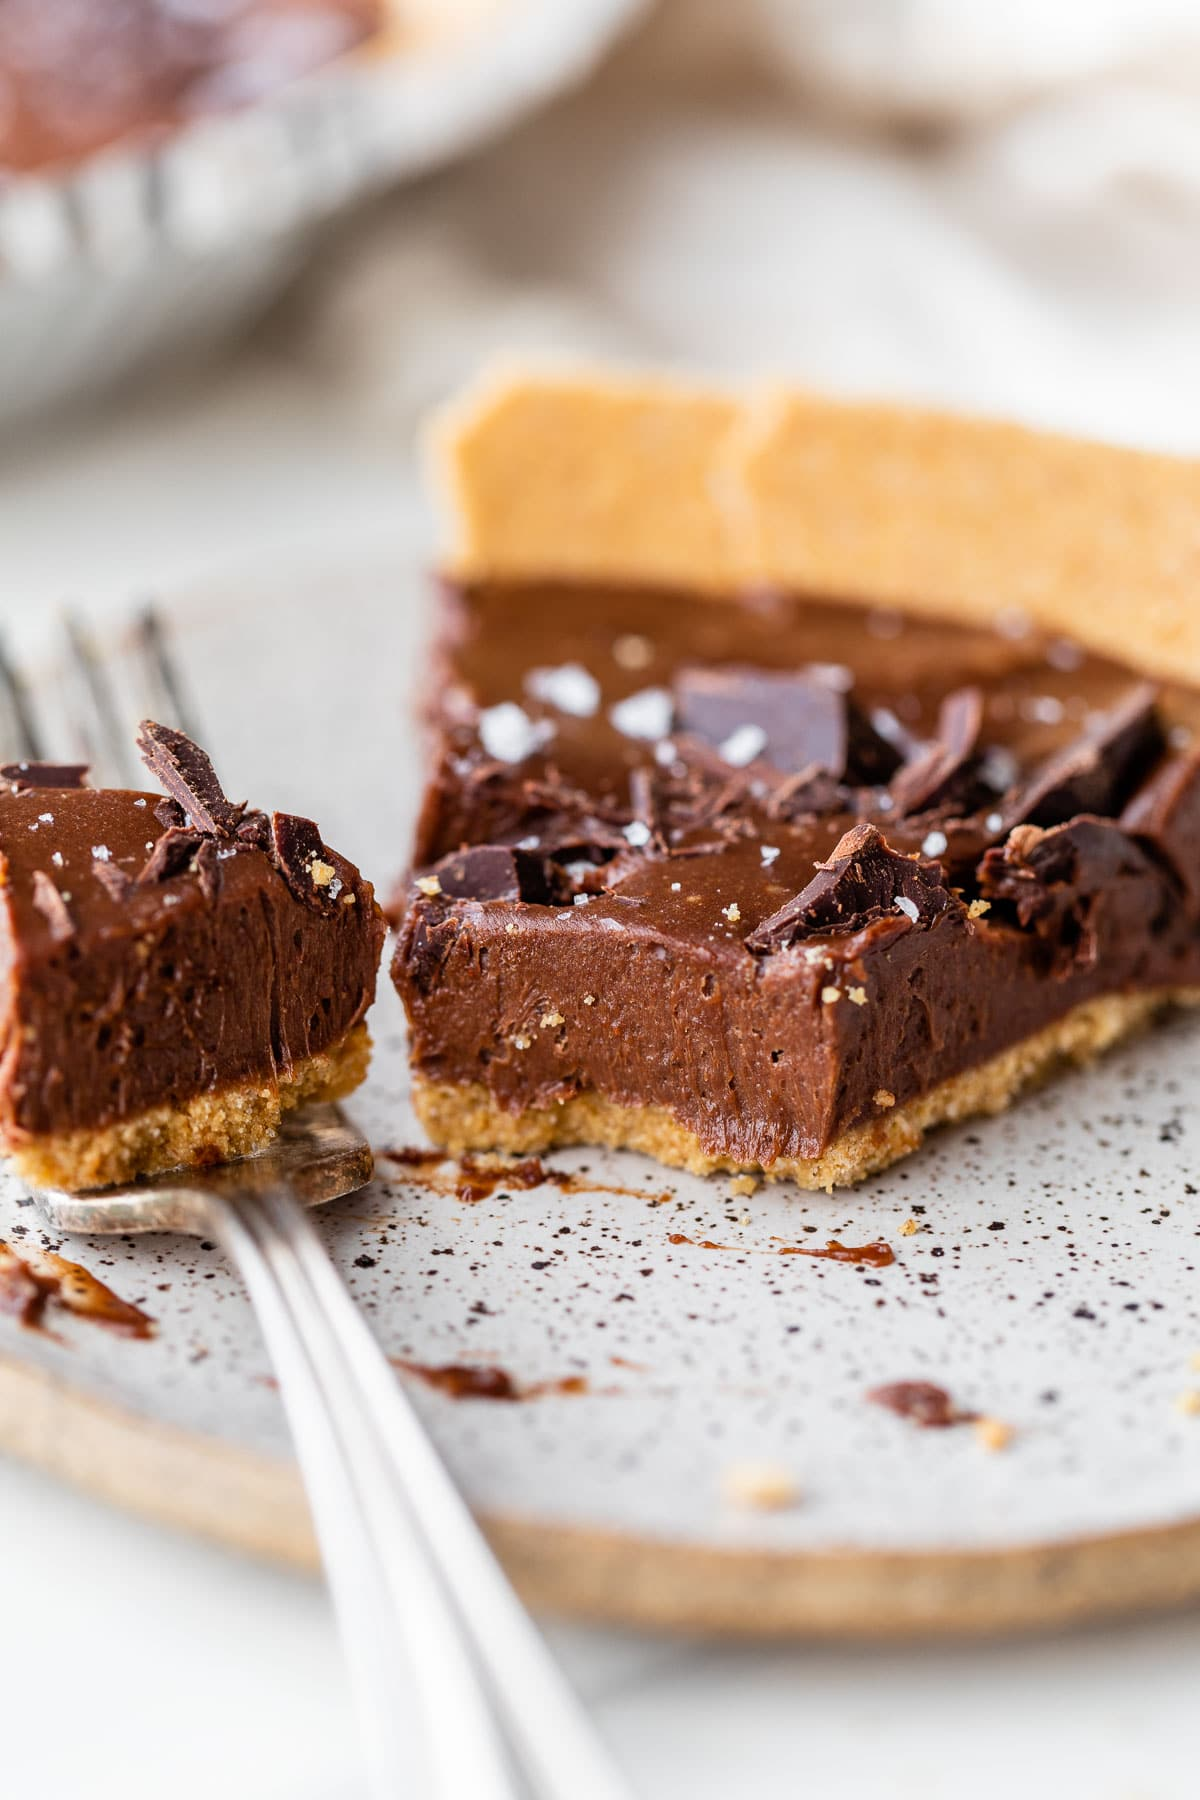 a slice of chocolate pie on a plate